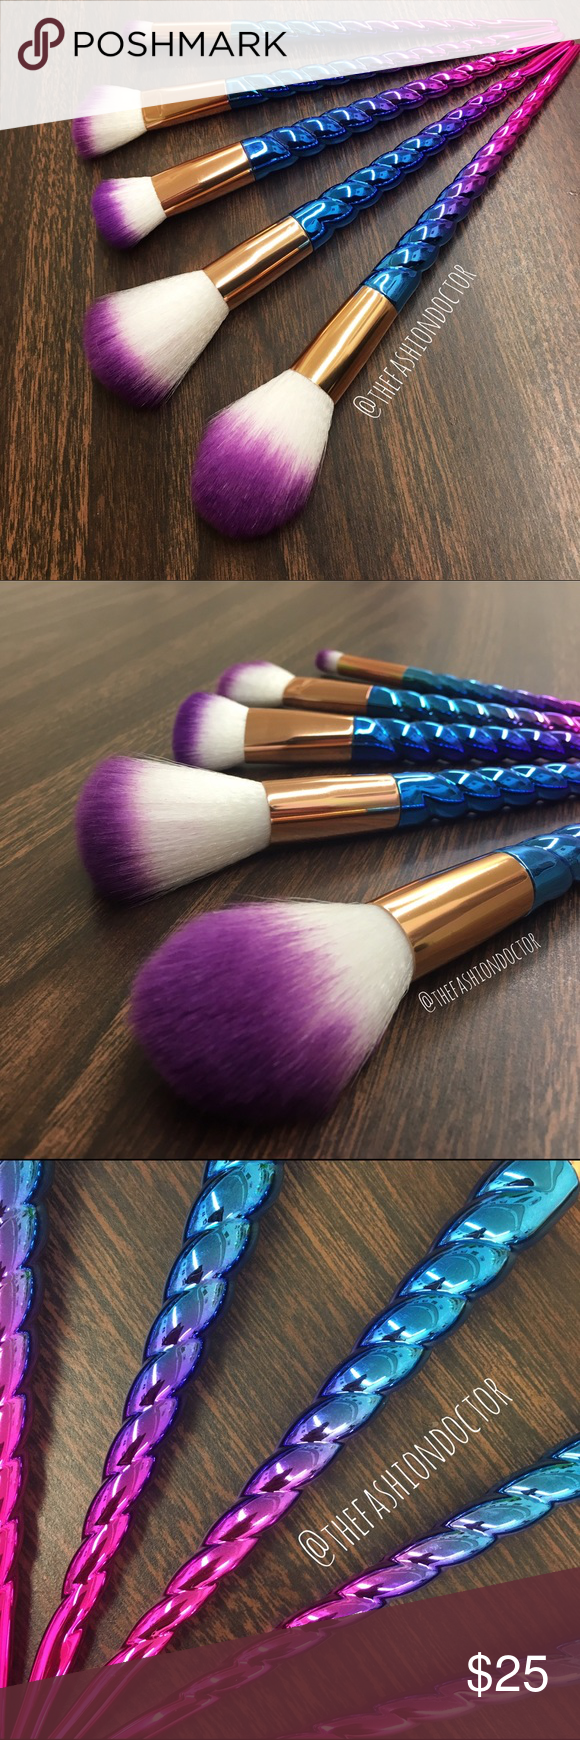 5 ombré unicorn horn makeup brush set 5 brand new